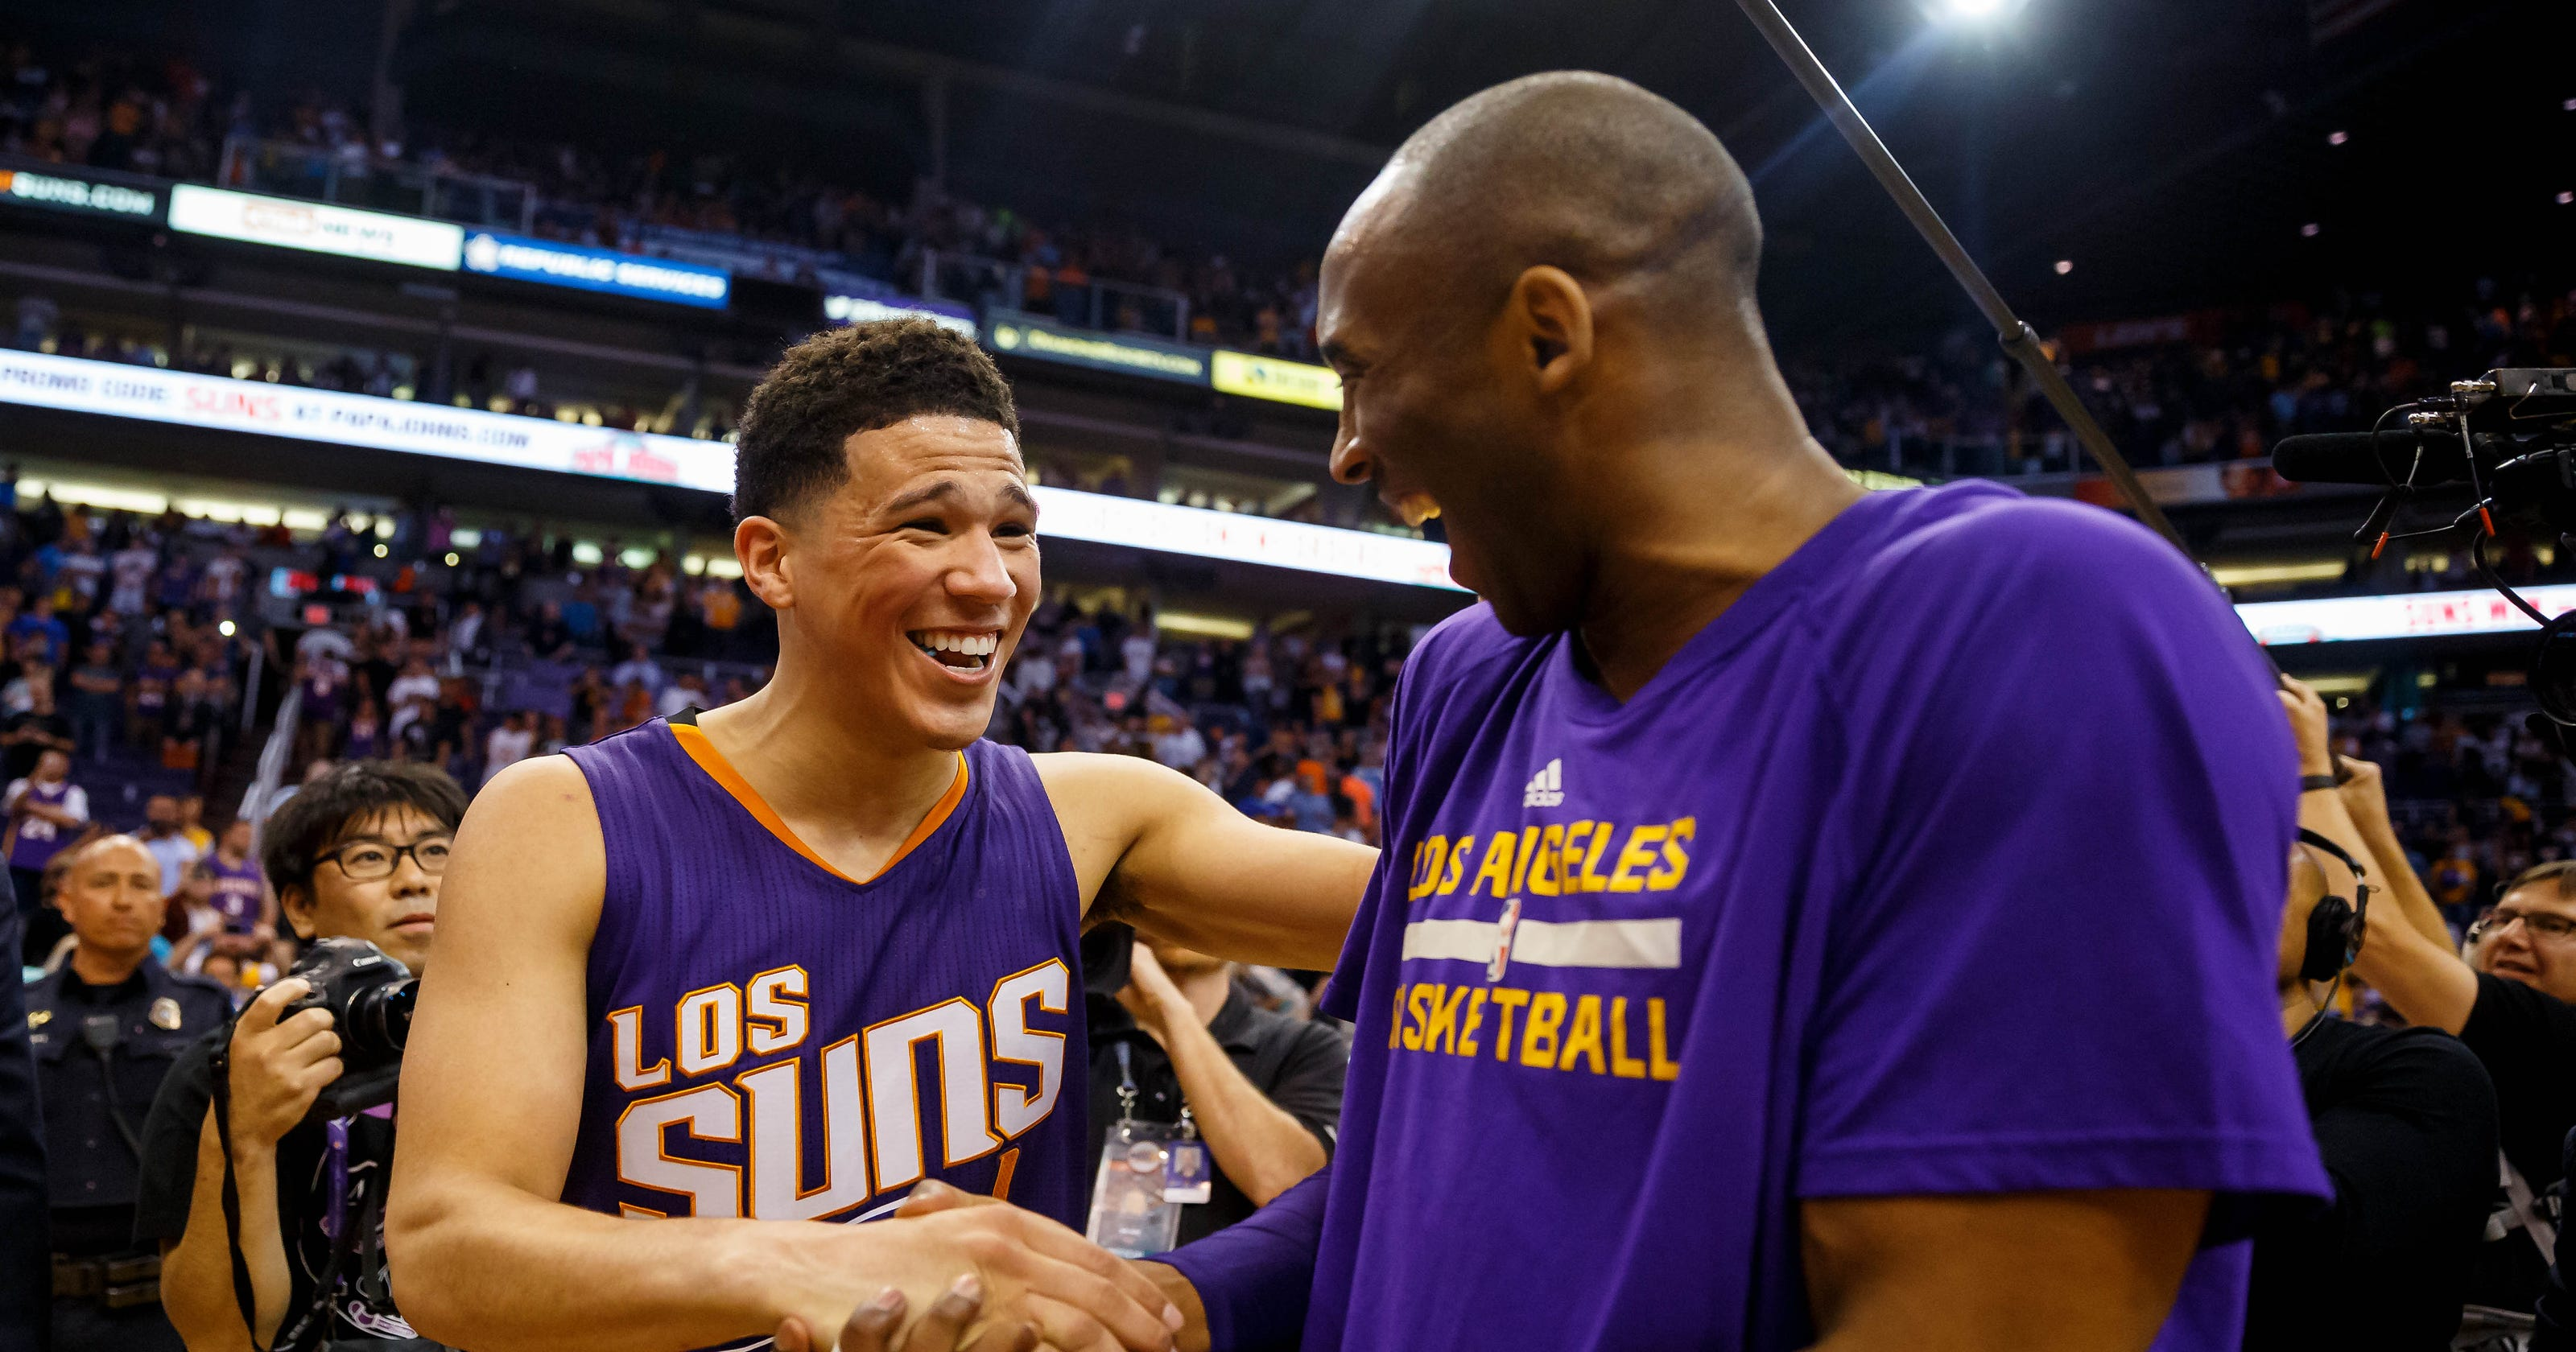 54e4b88f43dc Suns rookie Devin Booker gets Lakers star Kobe Bryant s time